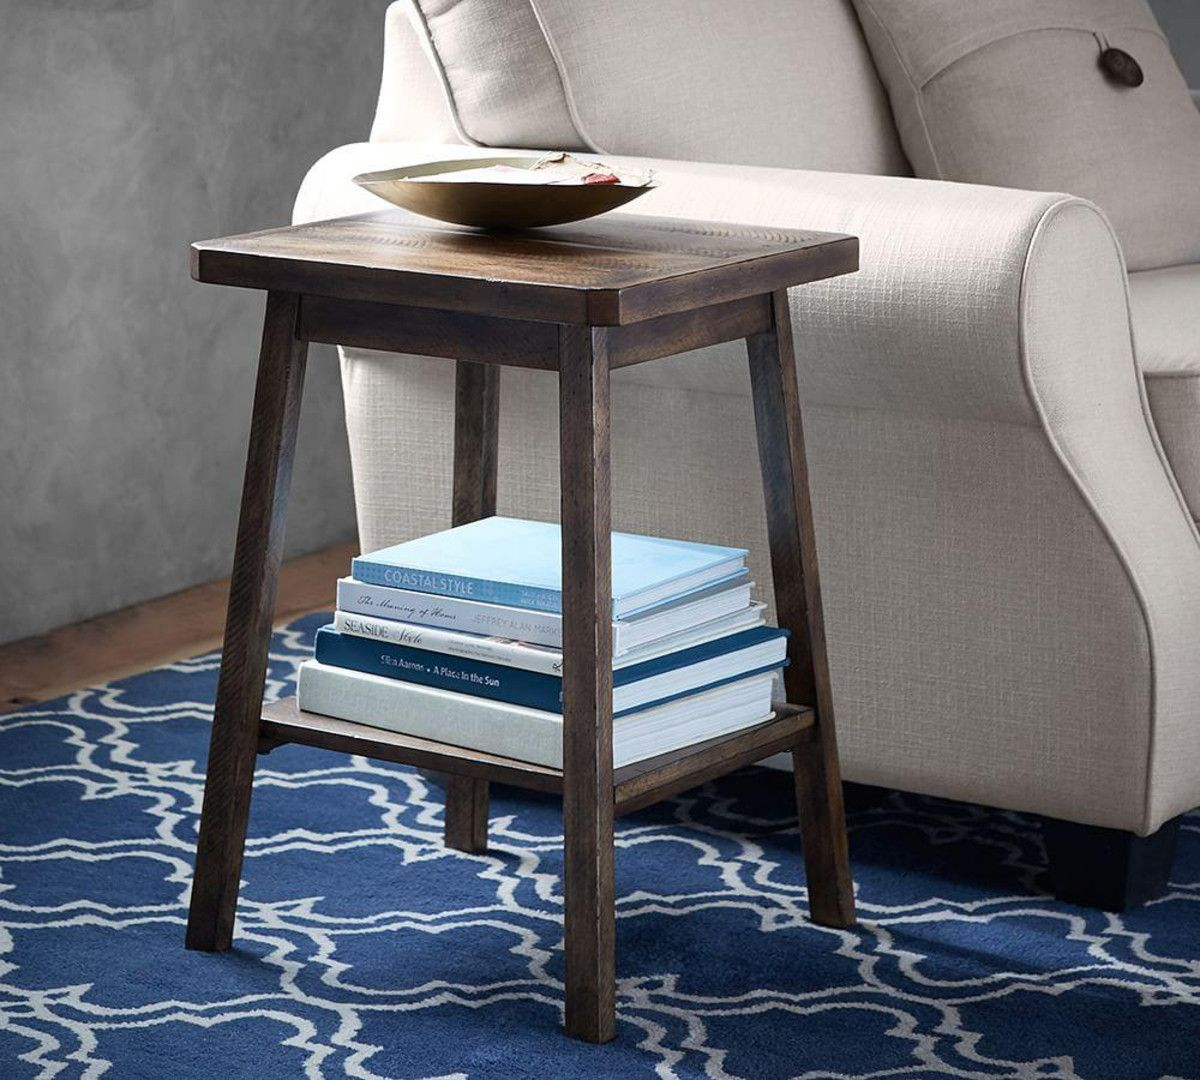 mateo side table home rustic pottery and barn jamie accent ikea kids storage solutions white granite coffee wood dining room furniture affordable living silver metal sofa for